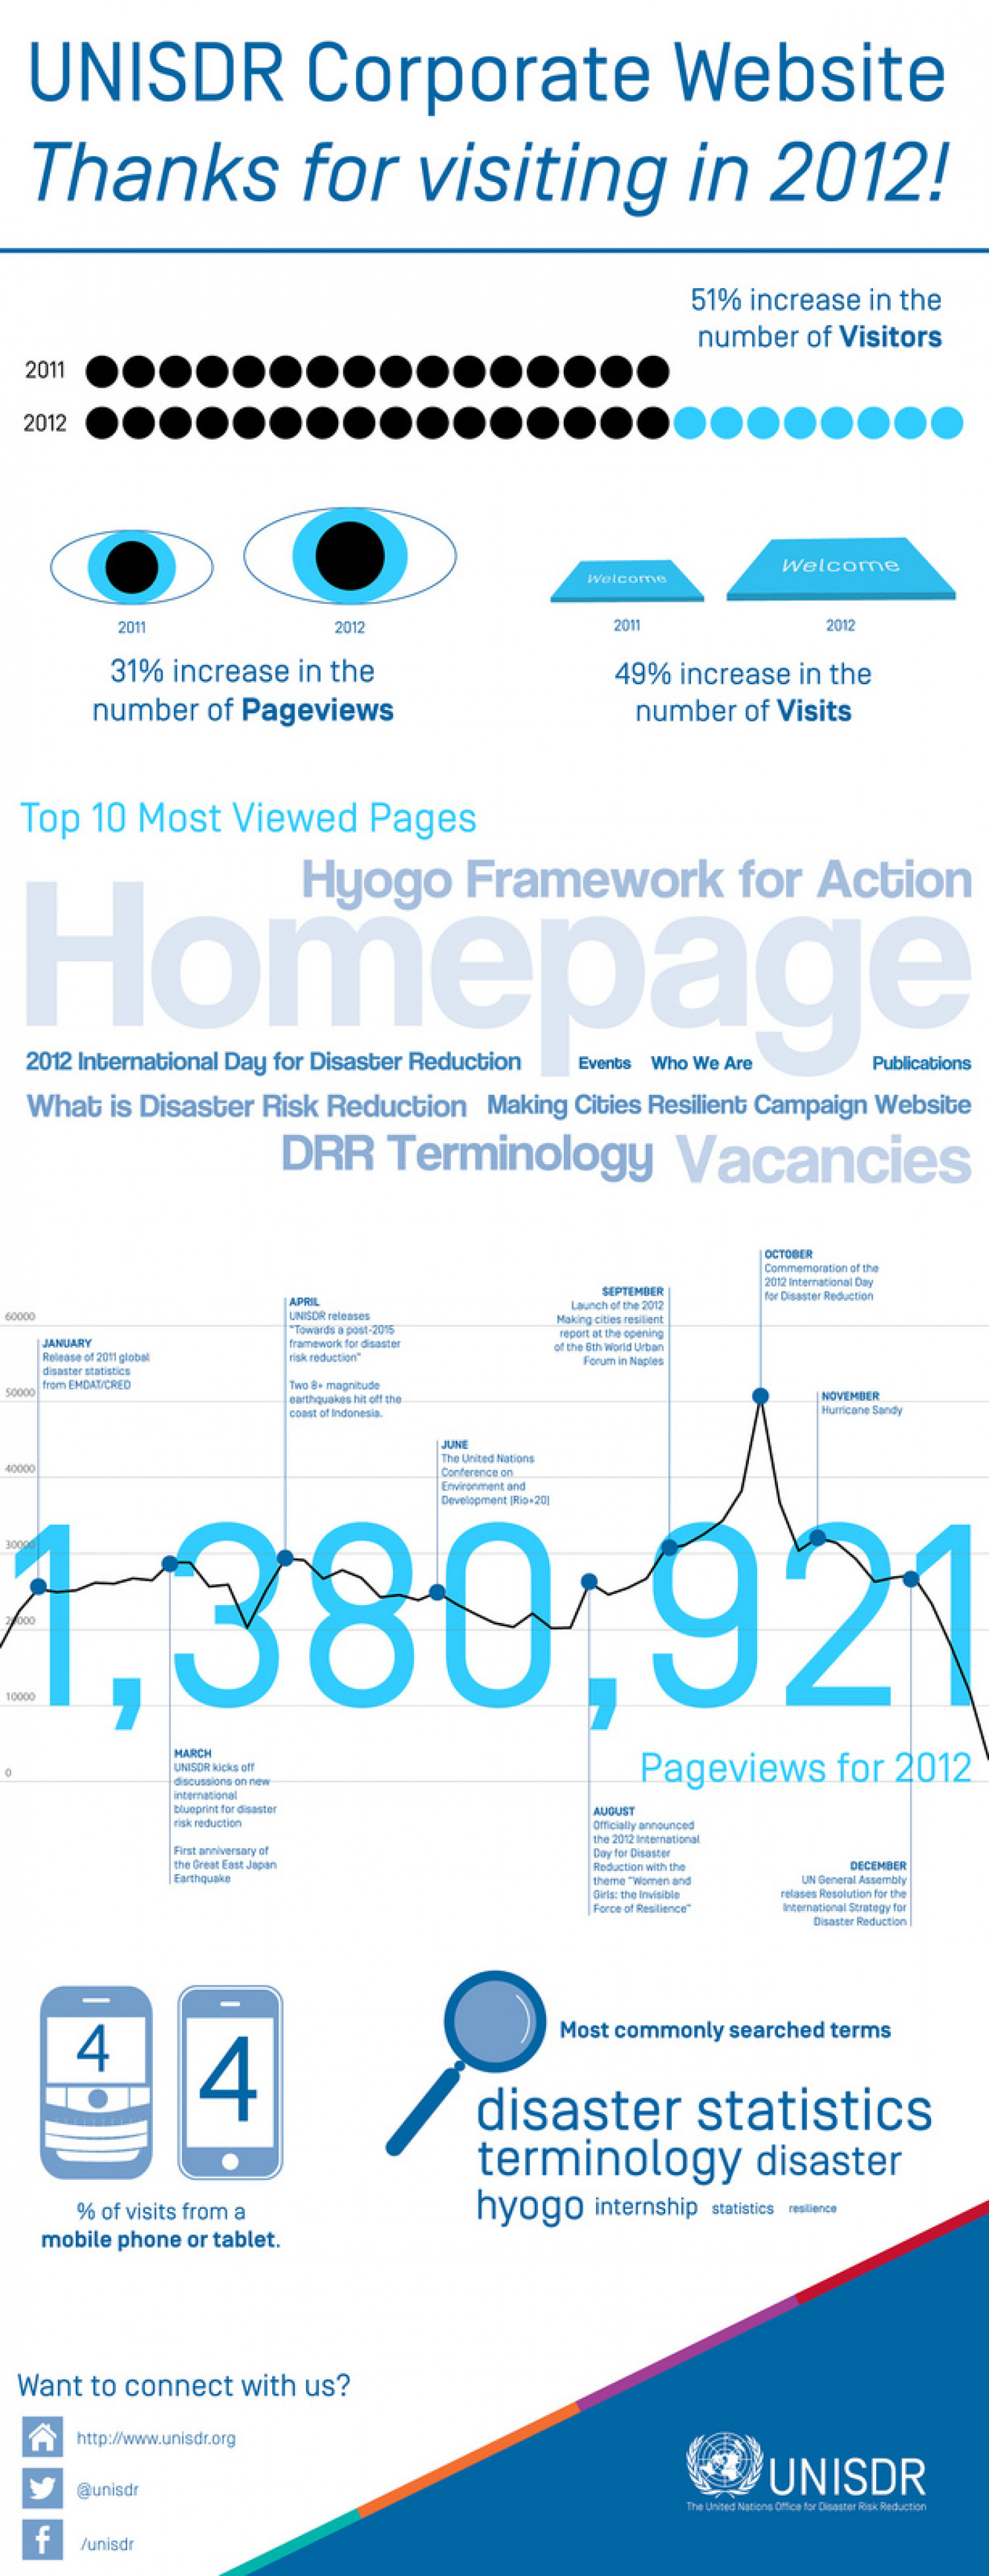 UNISDR Web Stats for 2012 Infographic